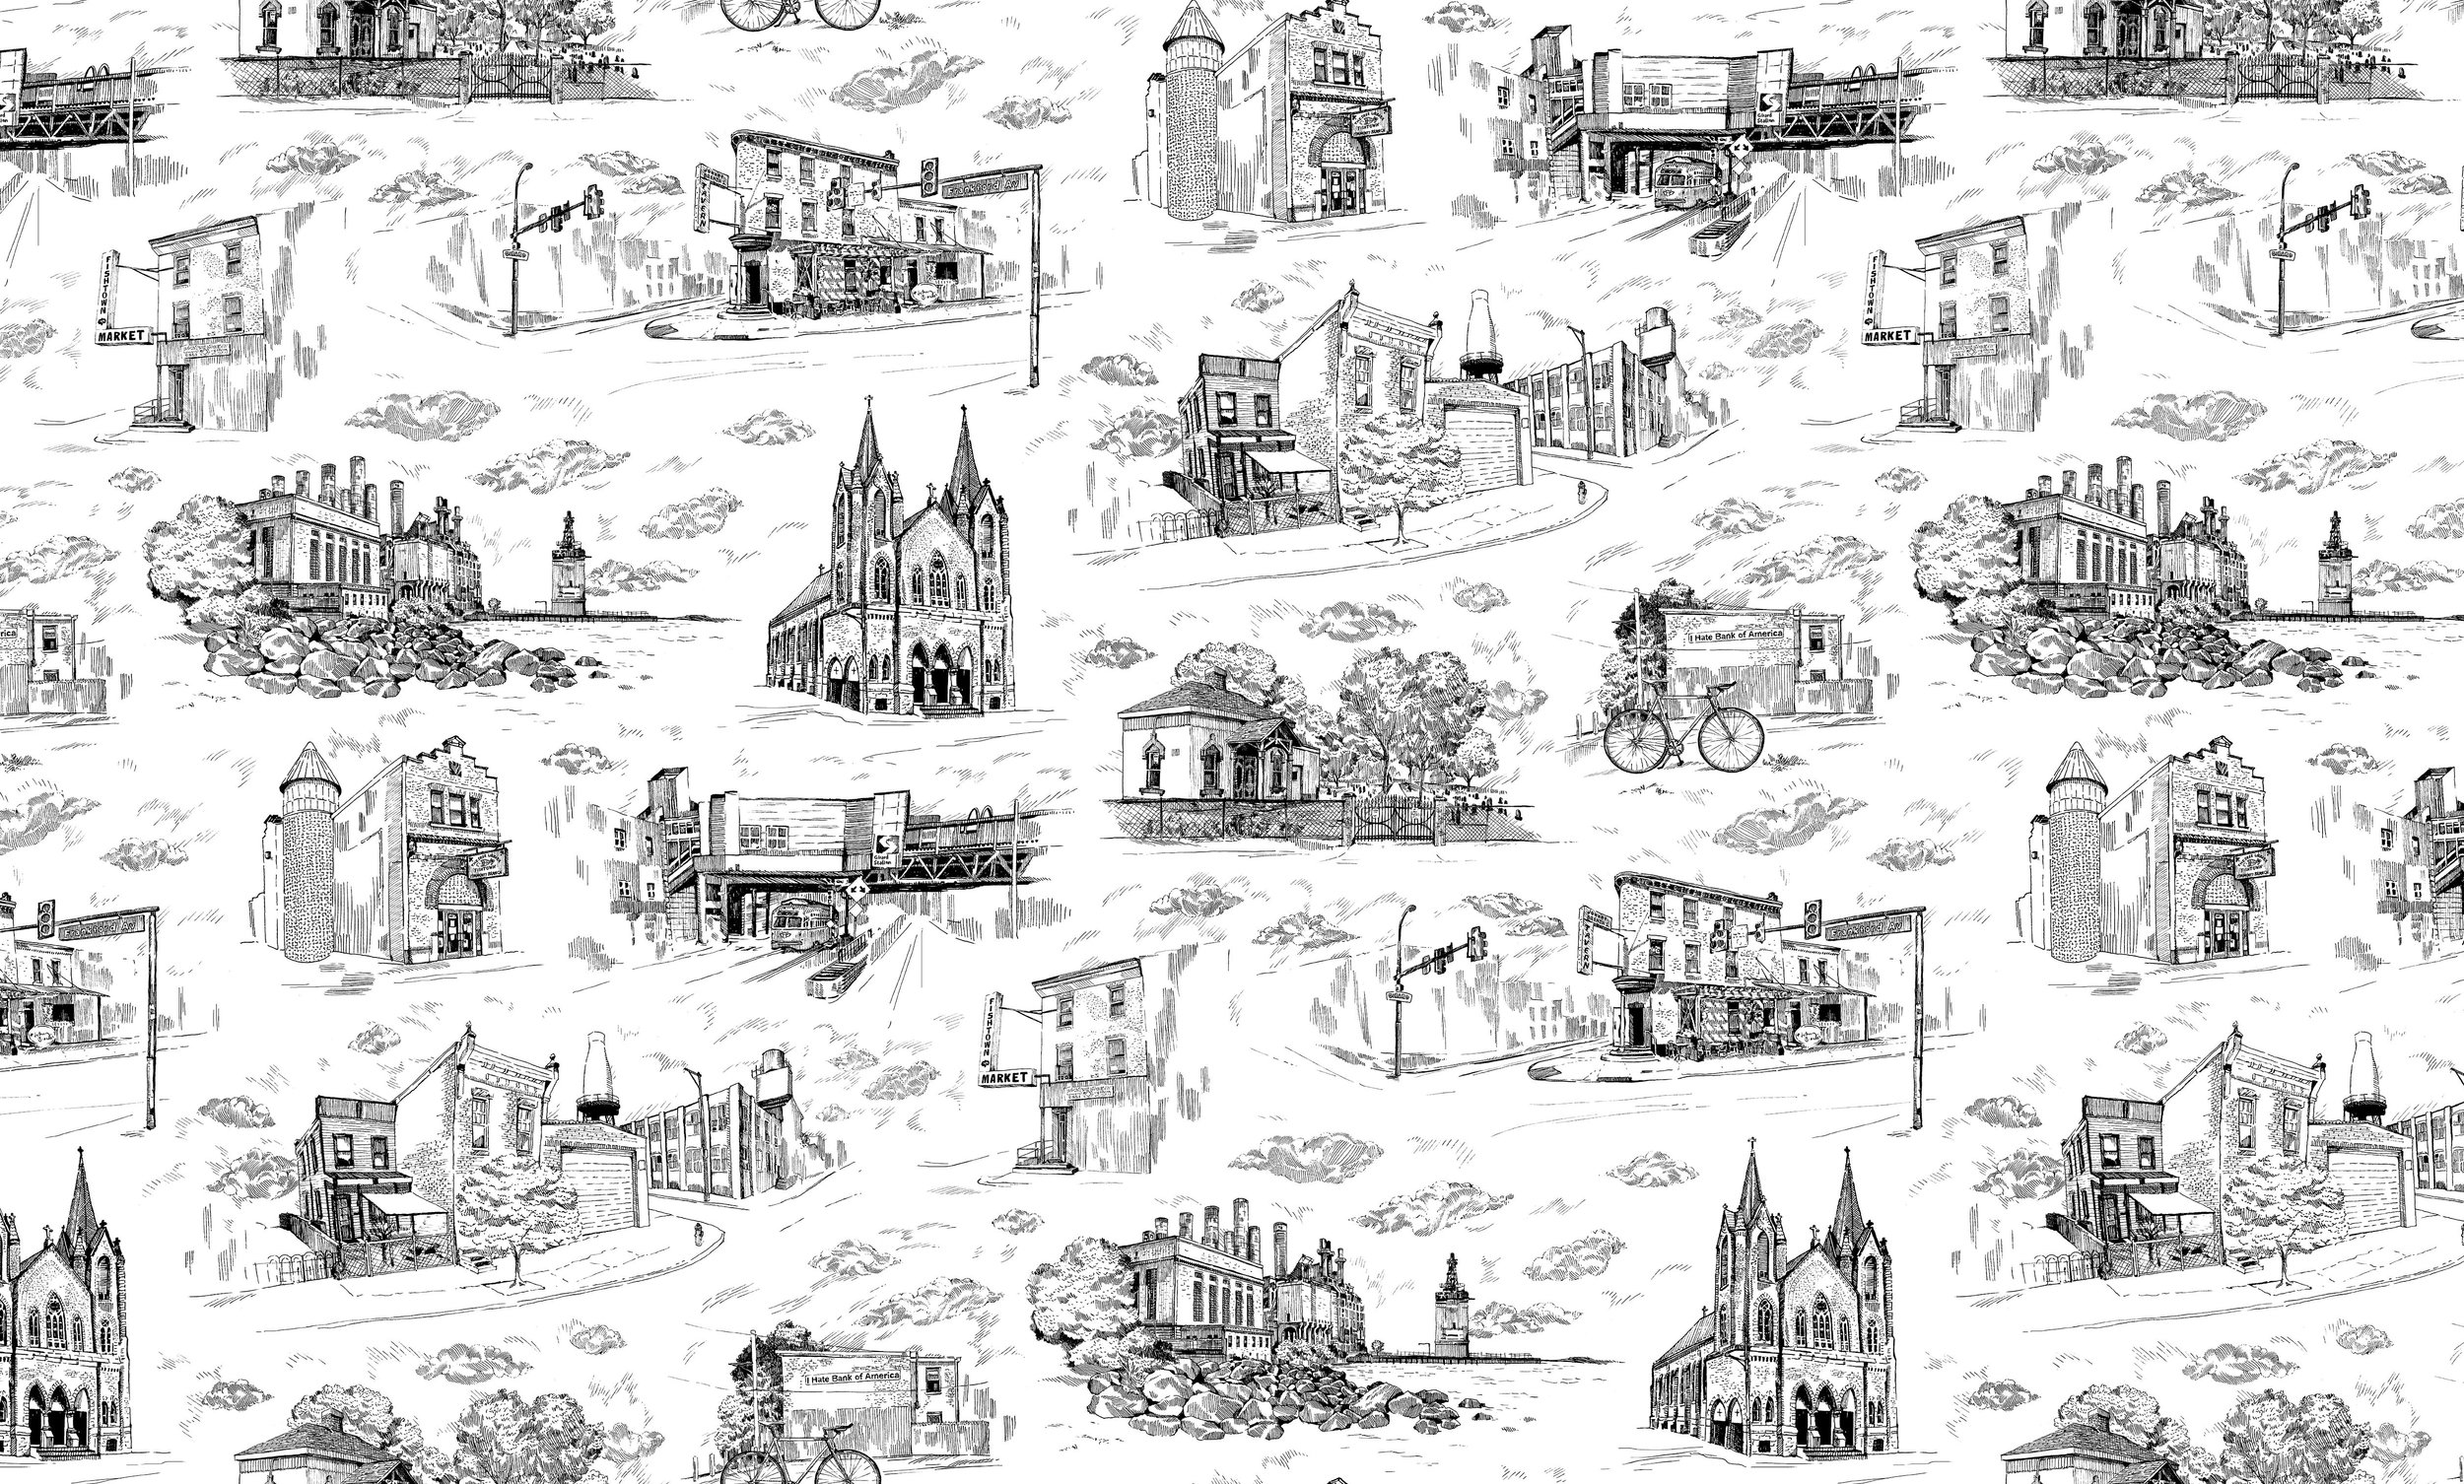 Fishtown_Toile_Final.jpg